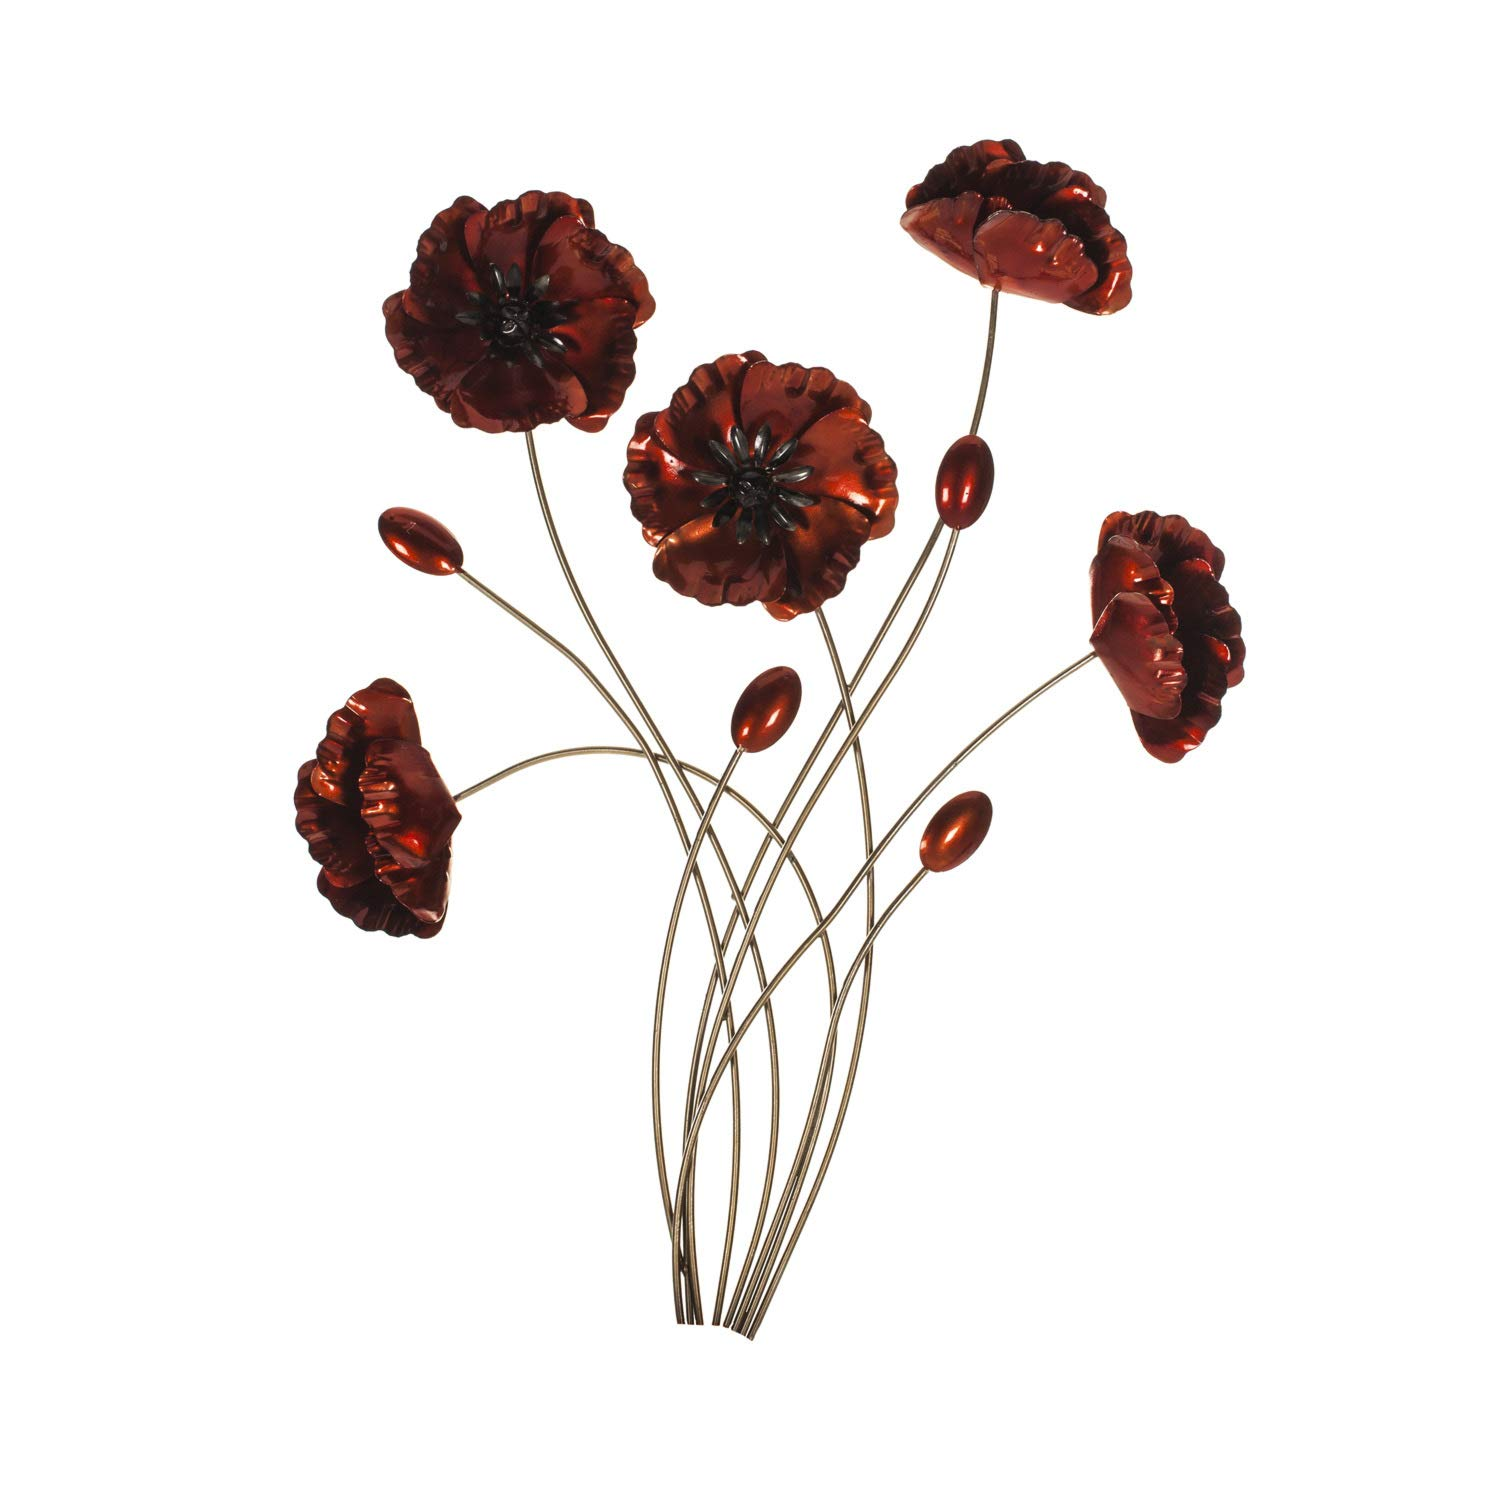 3D Design Bouquet Of Poppies Metal Wall Hanging Art Home Decor Floral Red Flower Design Gift NEW metal homedecor